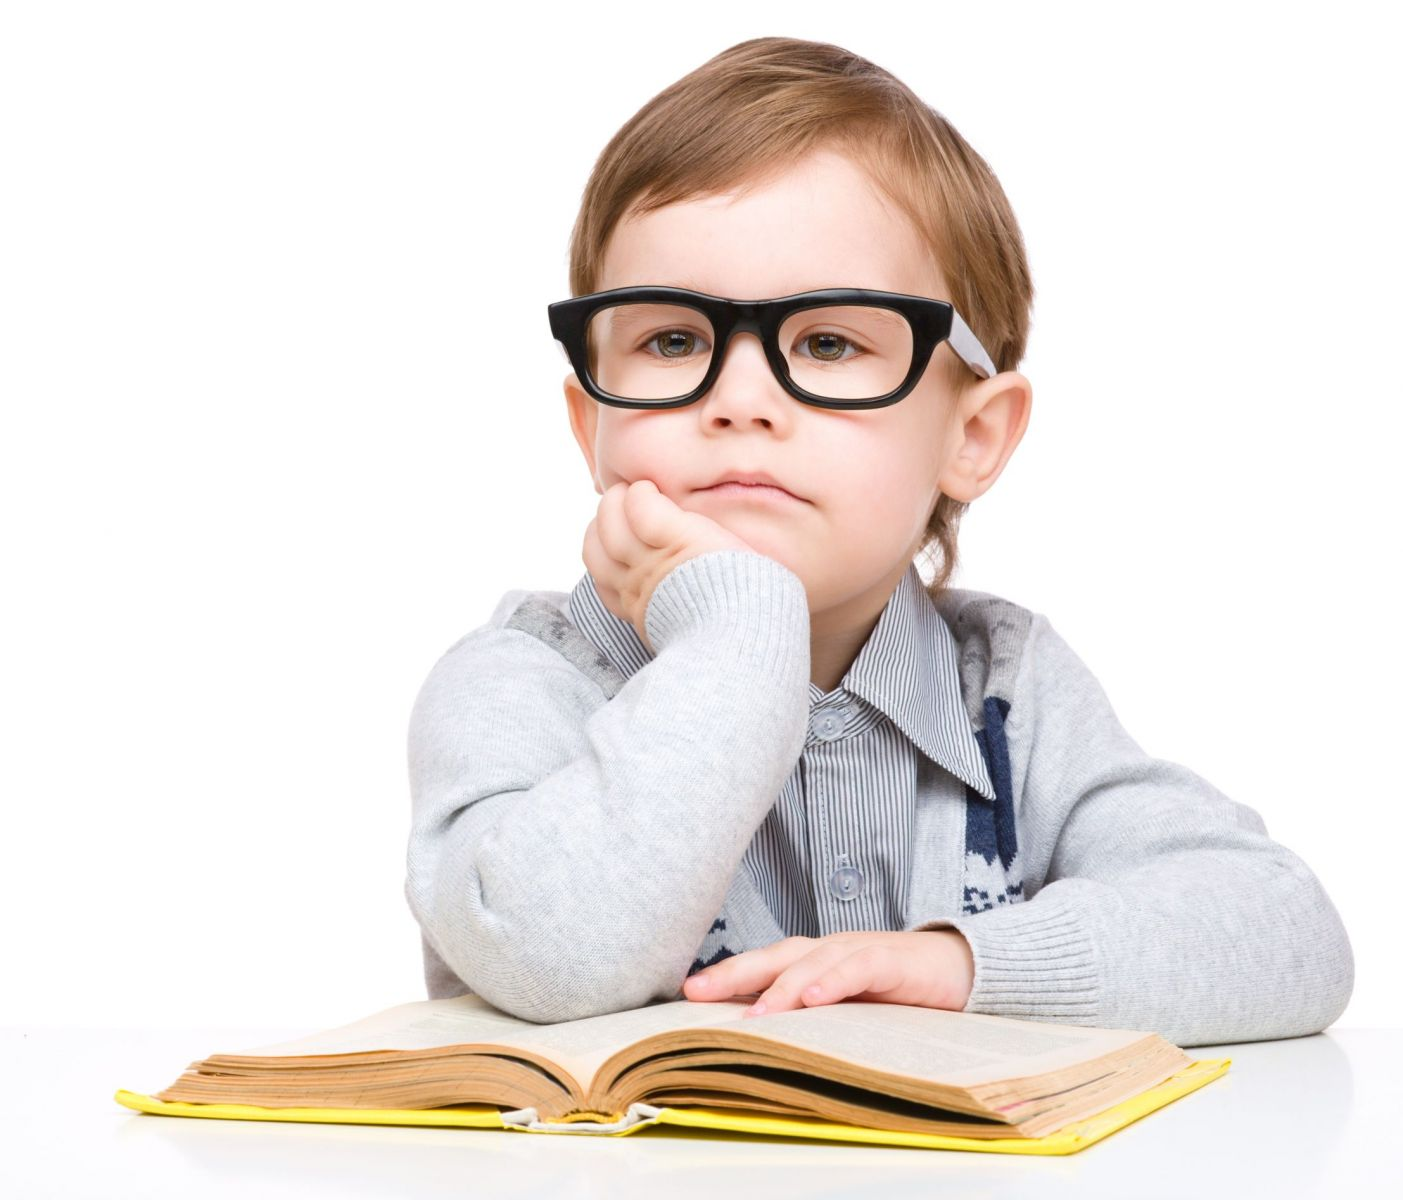 Boy With glasses reading(1)